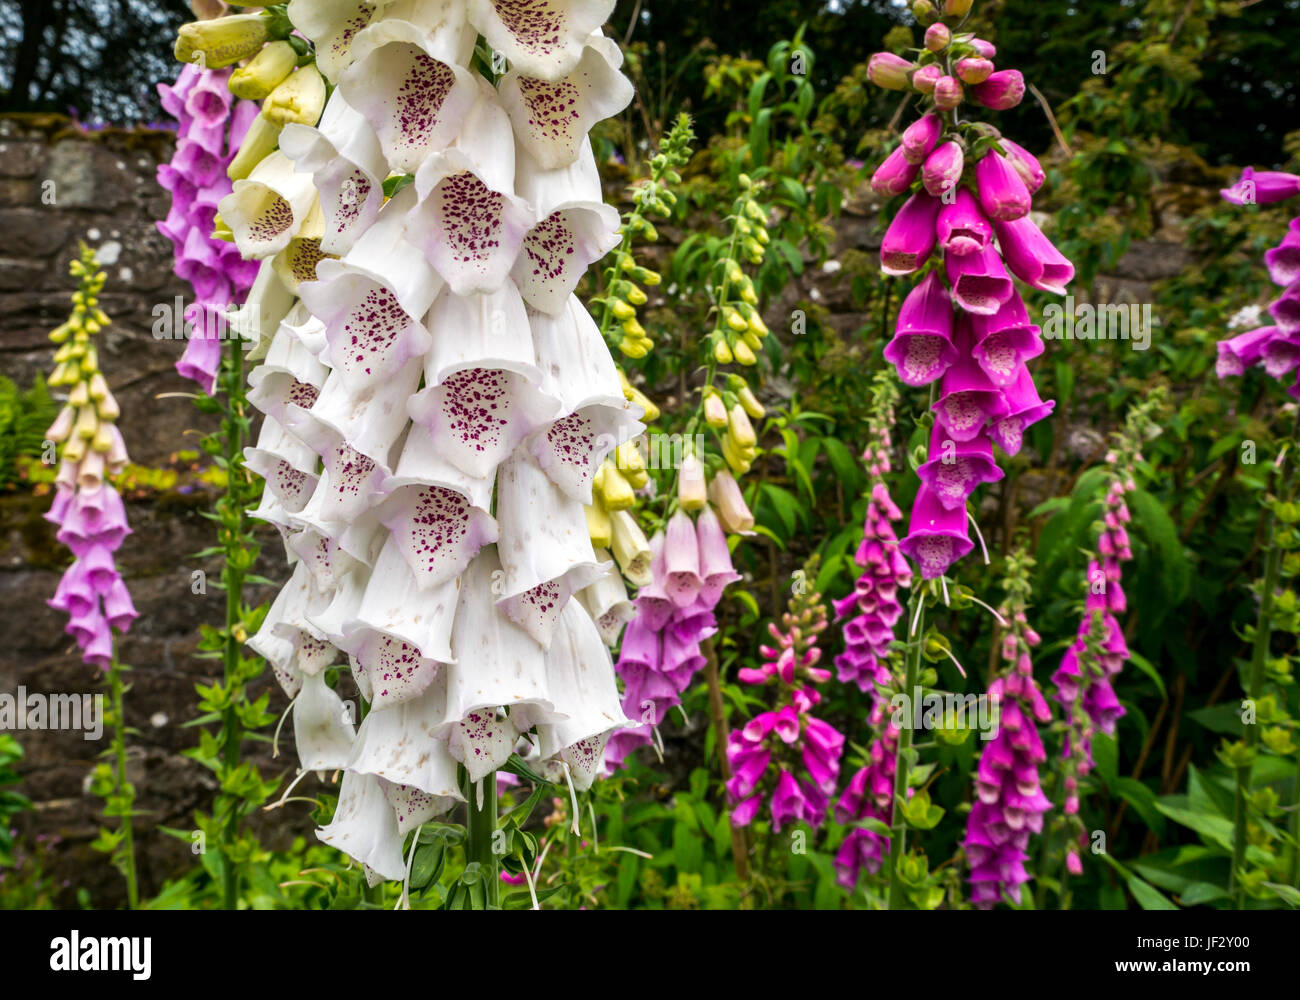 close-up-of-white-speckled-digitalis-fox